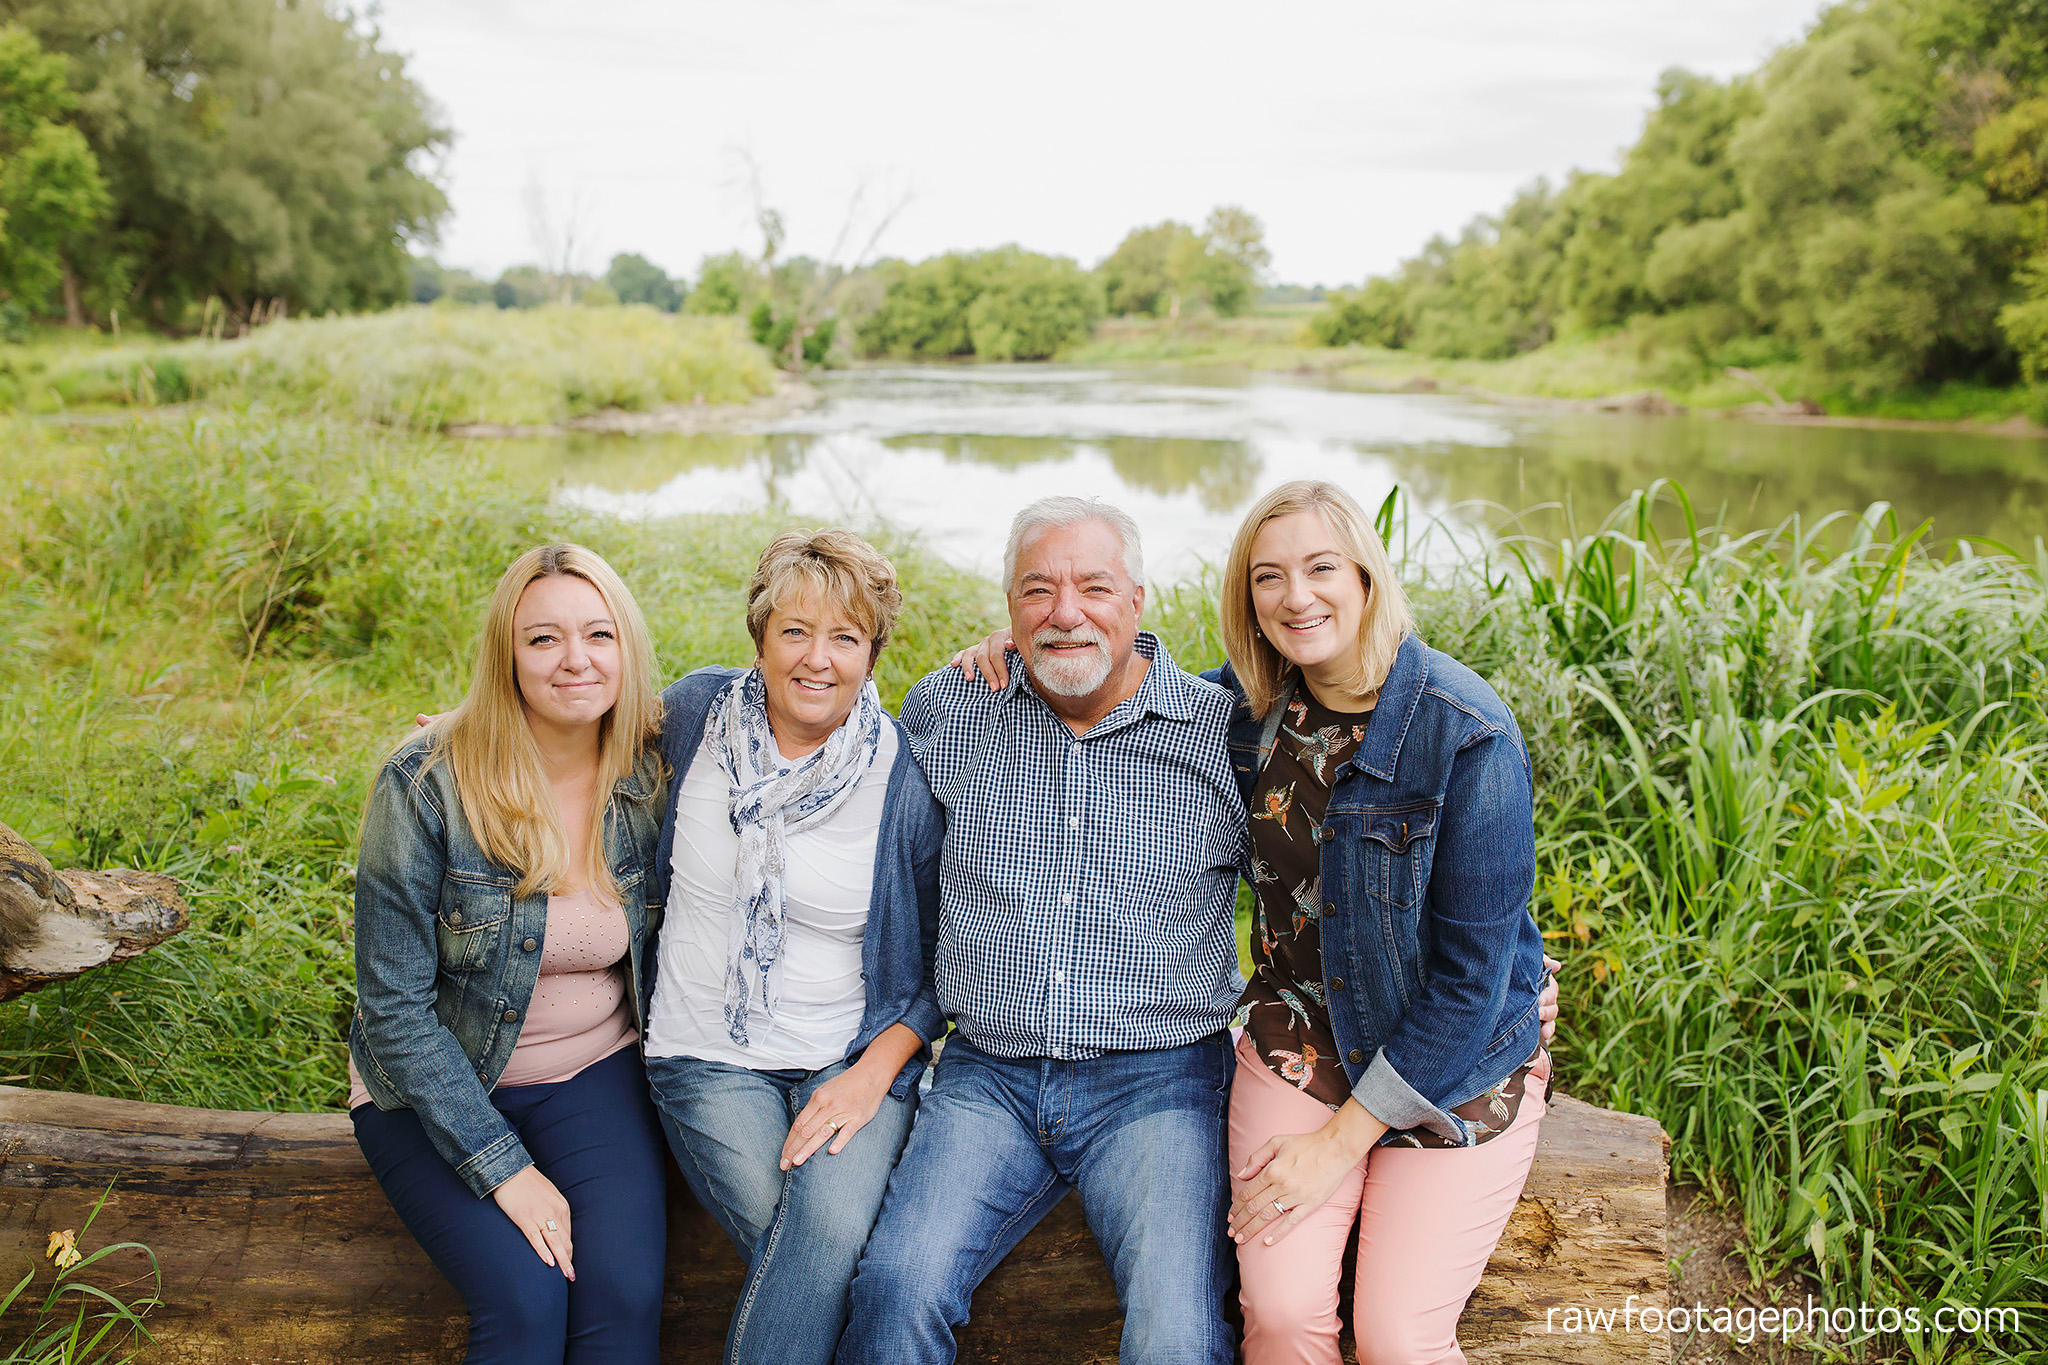 london_ontario_extended_family_photographer-raw_footage_photography009.jpg